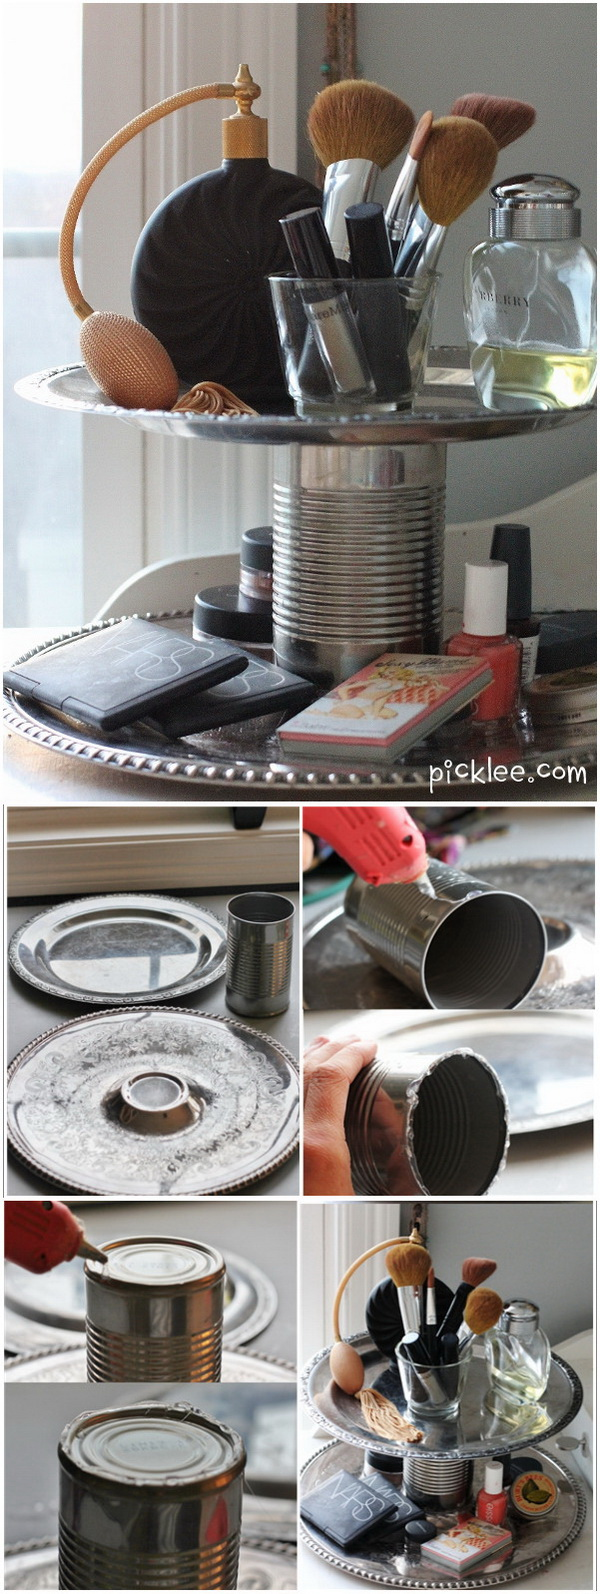 DIY Ethnic Two-Tier Organizer. With two discarded plates a tin can and some hot glue gun, you'll have this elegant two tier makeup organizer up in no time. You will be amazed by how easy it is to make and how elelgant it turns out.